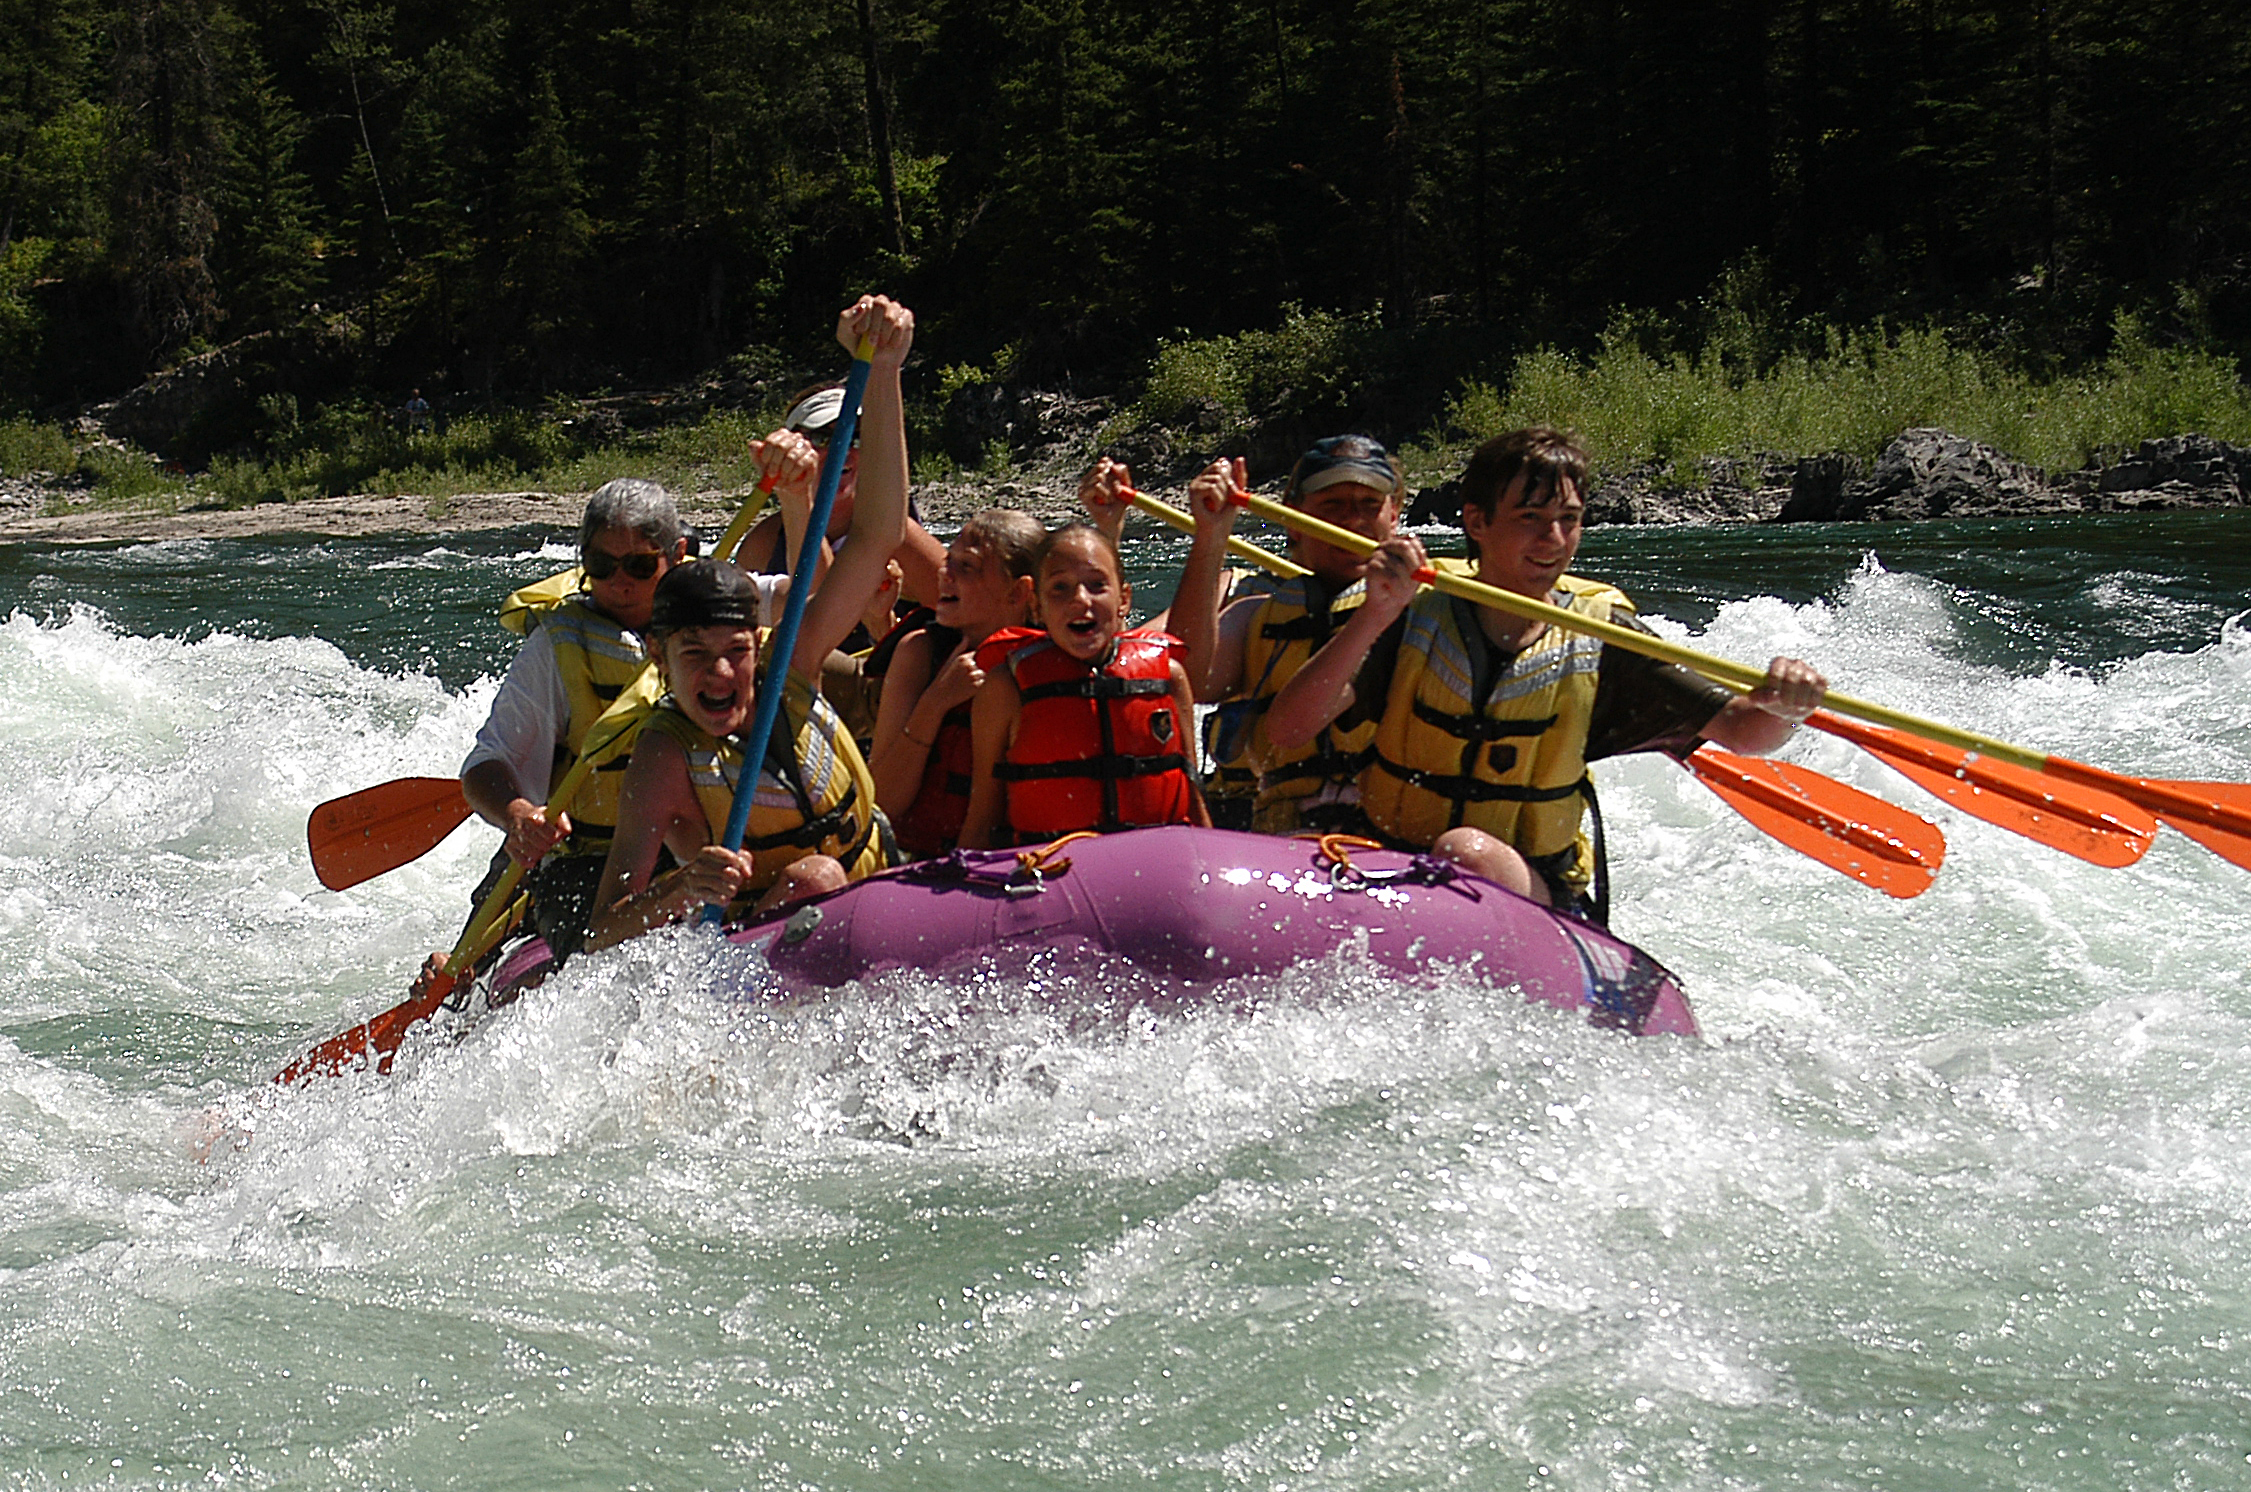 "<a href=""/whitewater-rafting-small-boat-big-ride/"">Small Boat, Big Ride</a>"